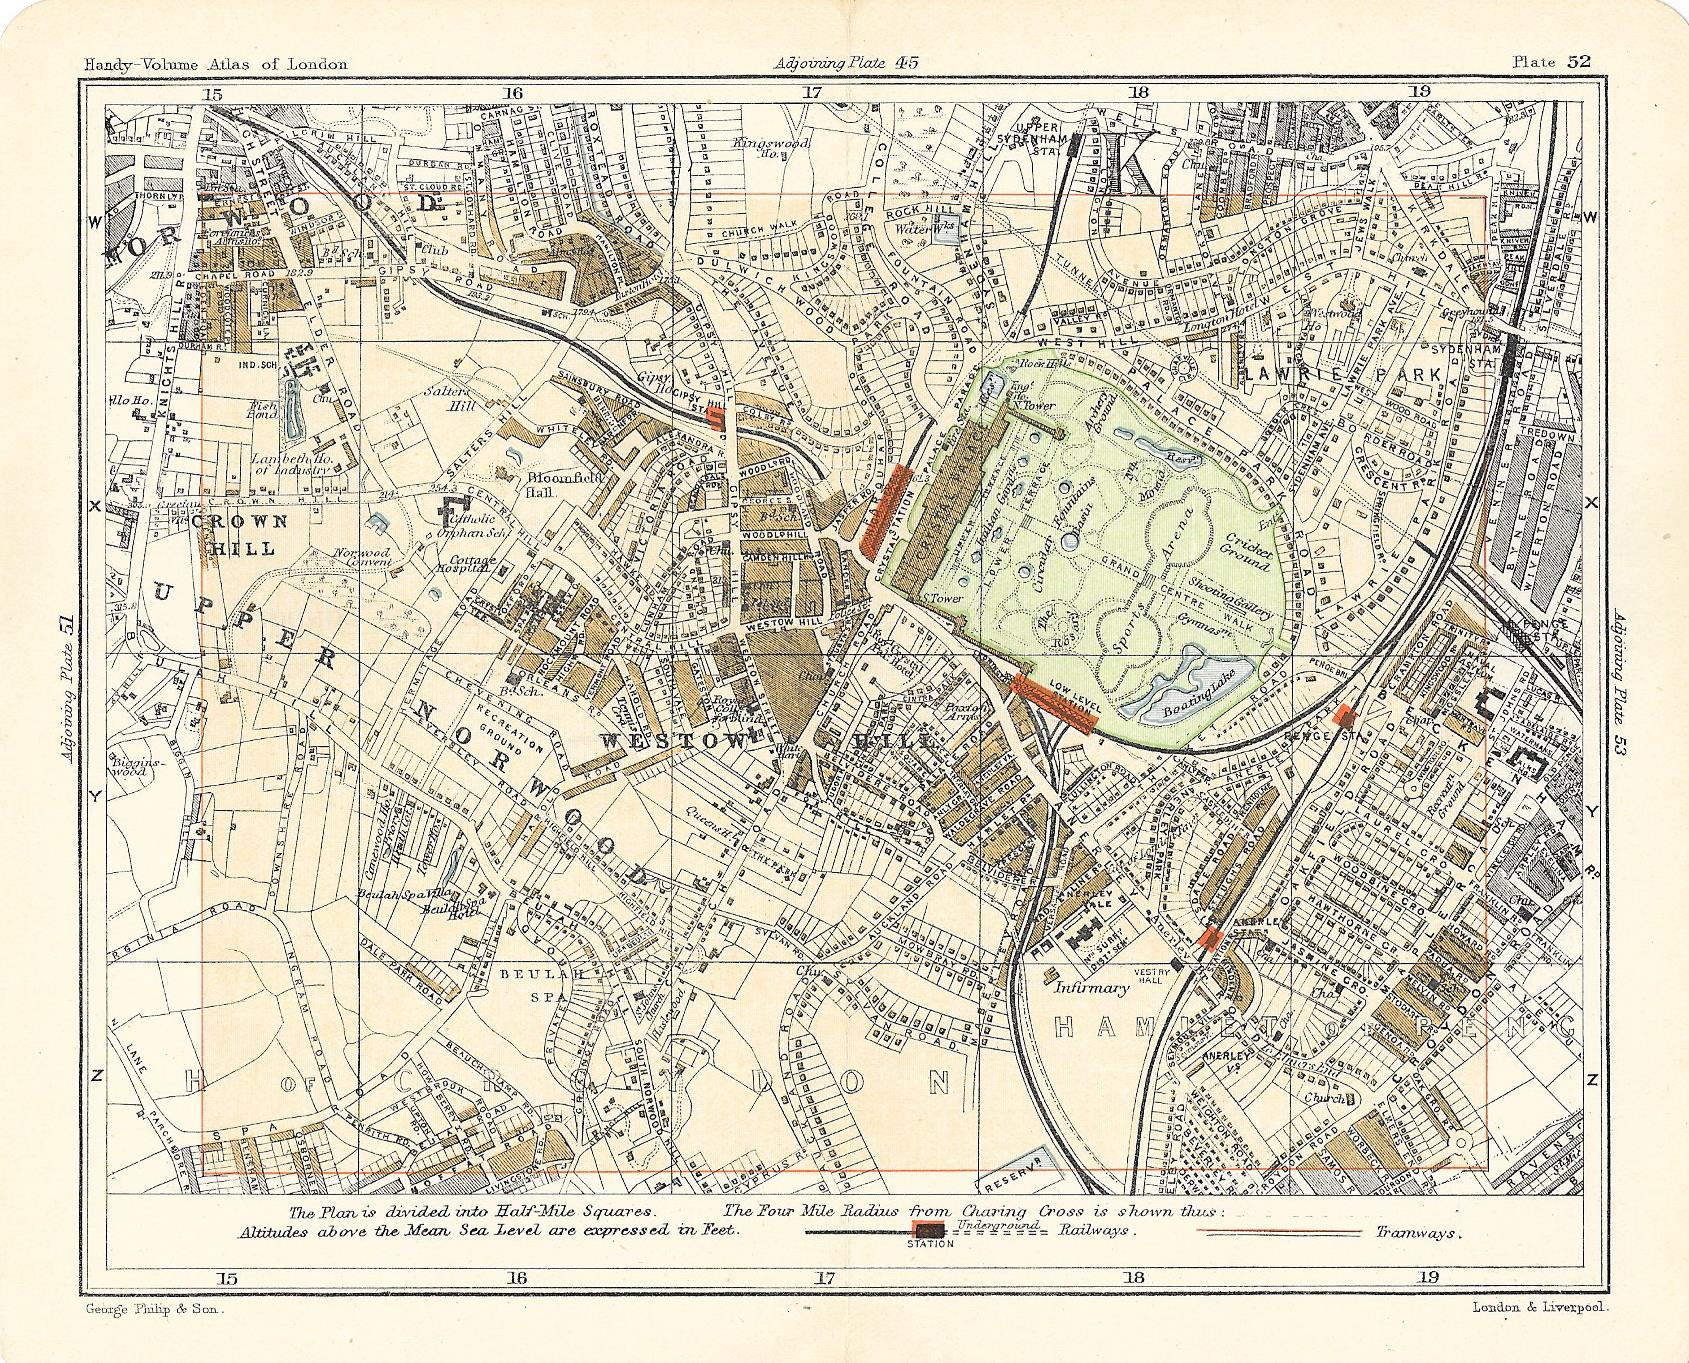 Crystal Palace antique map 1902 - Frontispiece